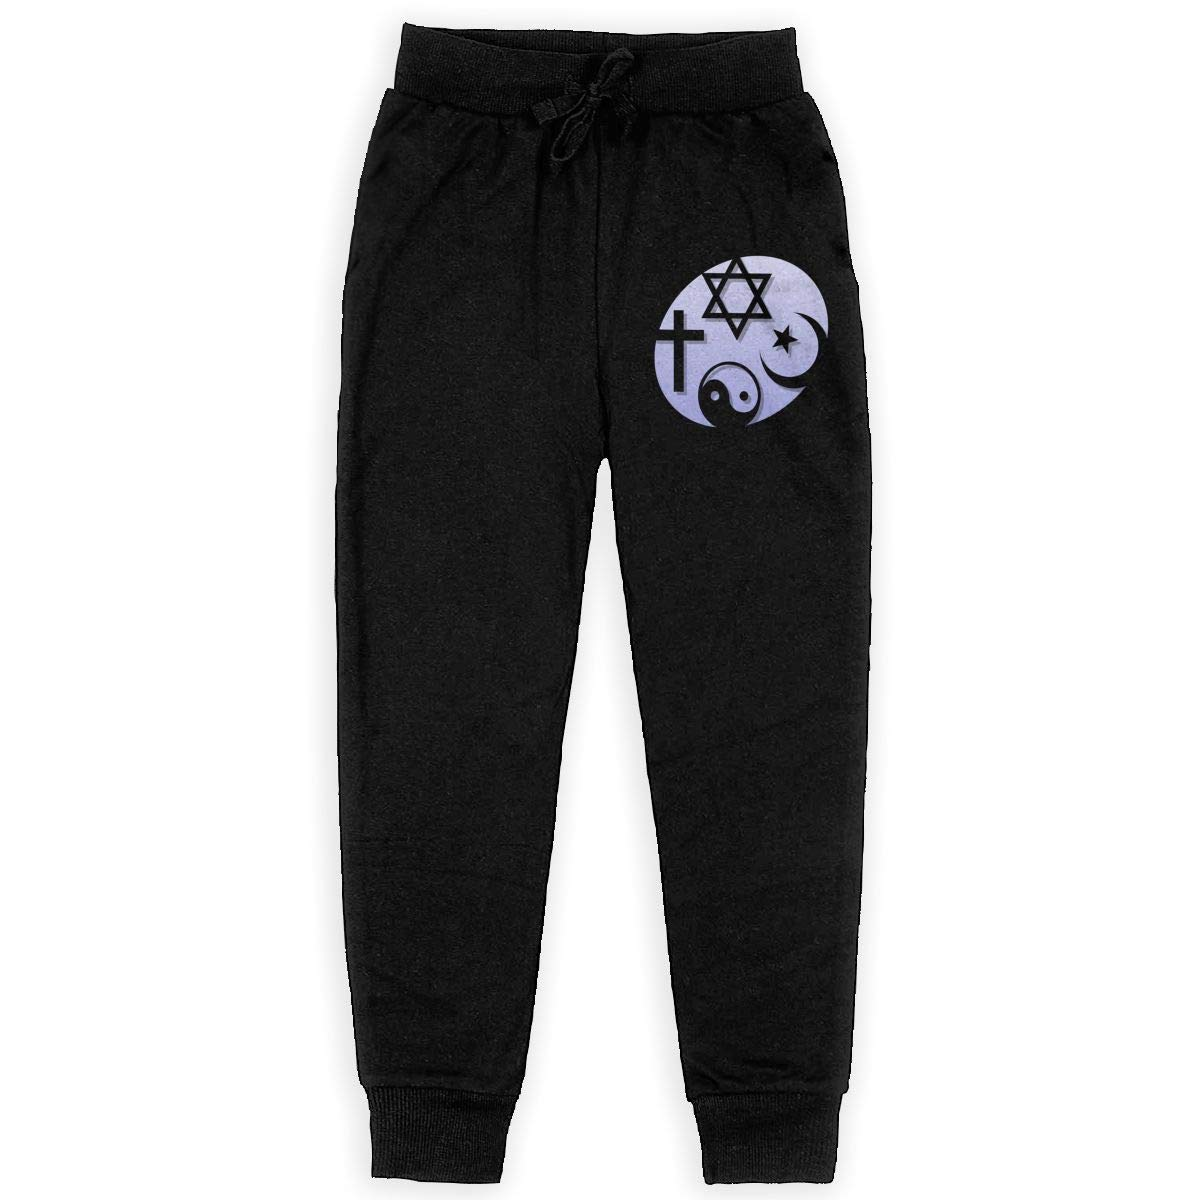 Dunpaiaa Cool Science Coexist Boys Sweatpants,Joggers Sport Training Pants Trousers Black